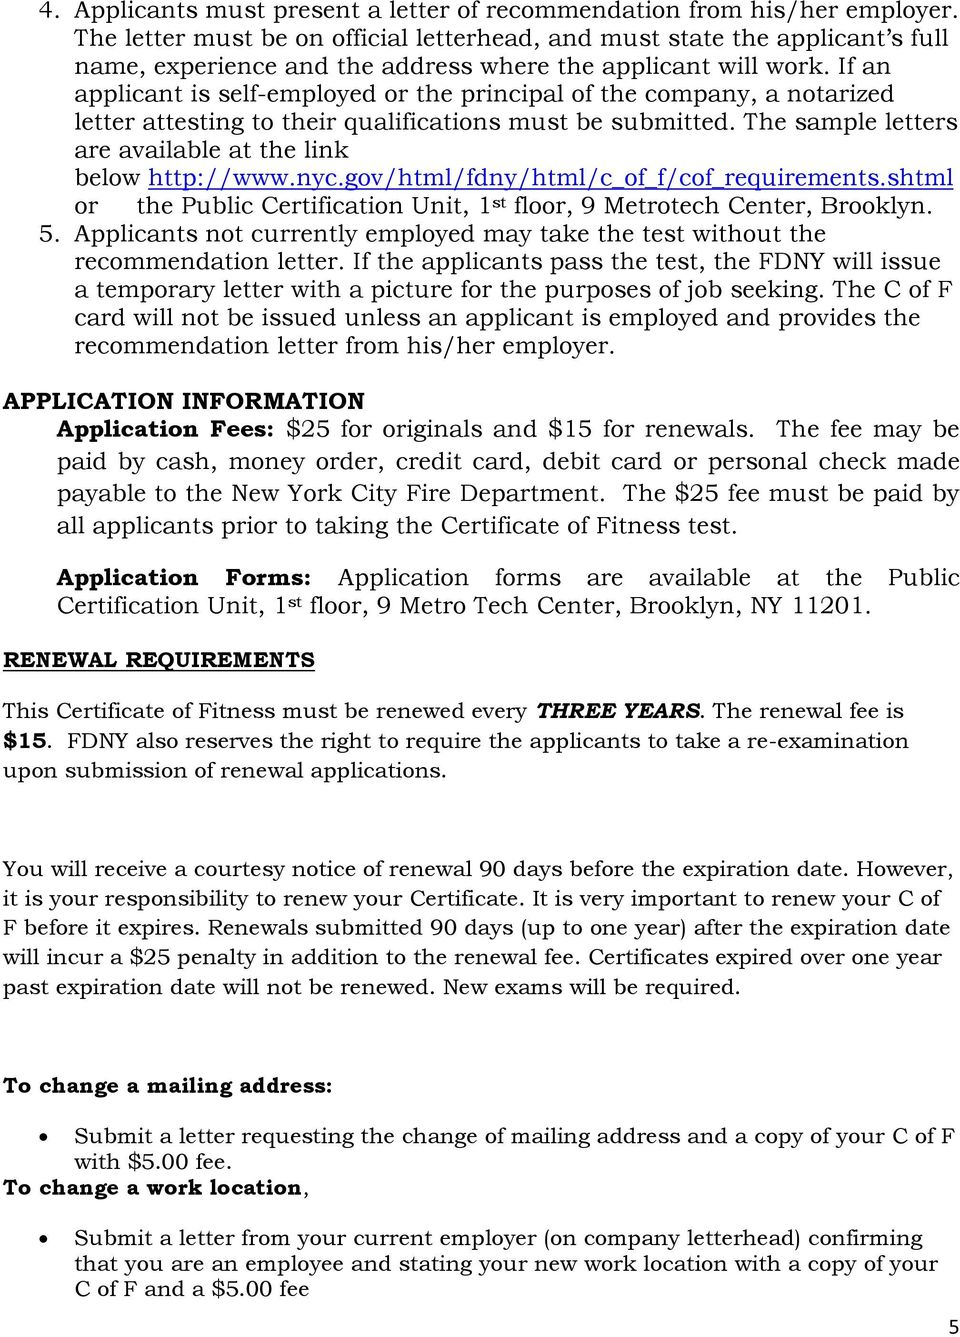 Fire Department City Of New York Study Material For The Certificate